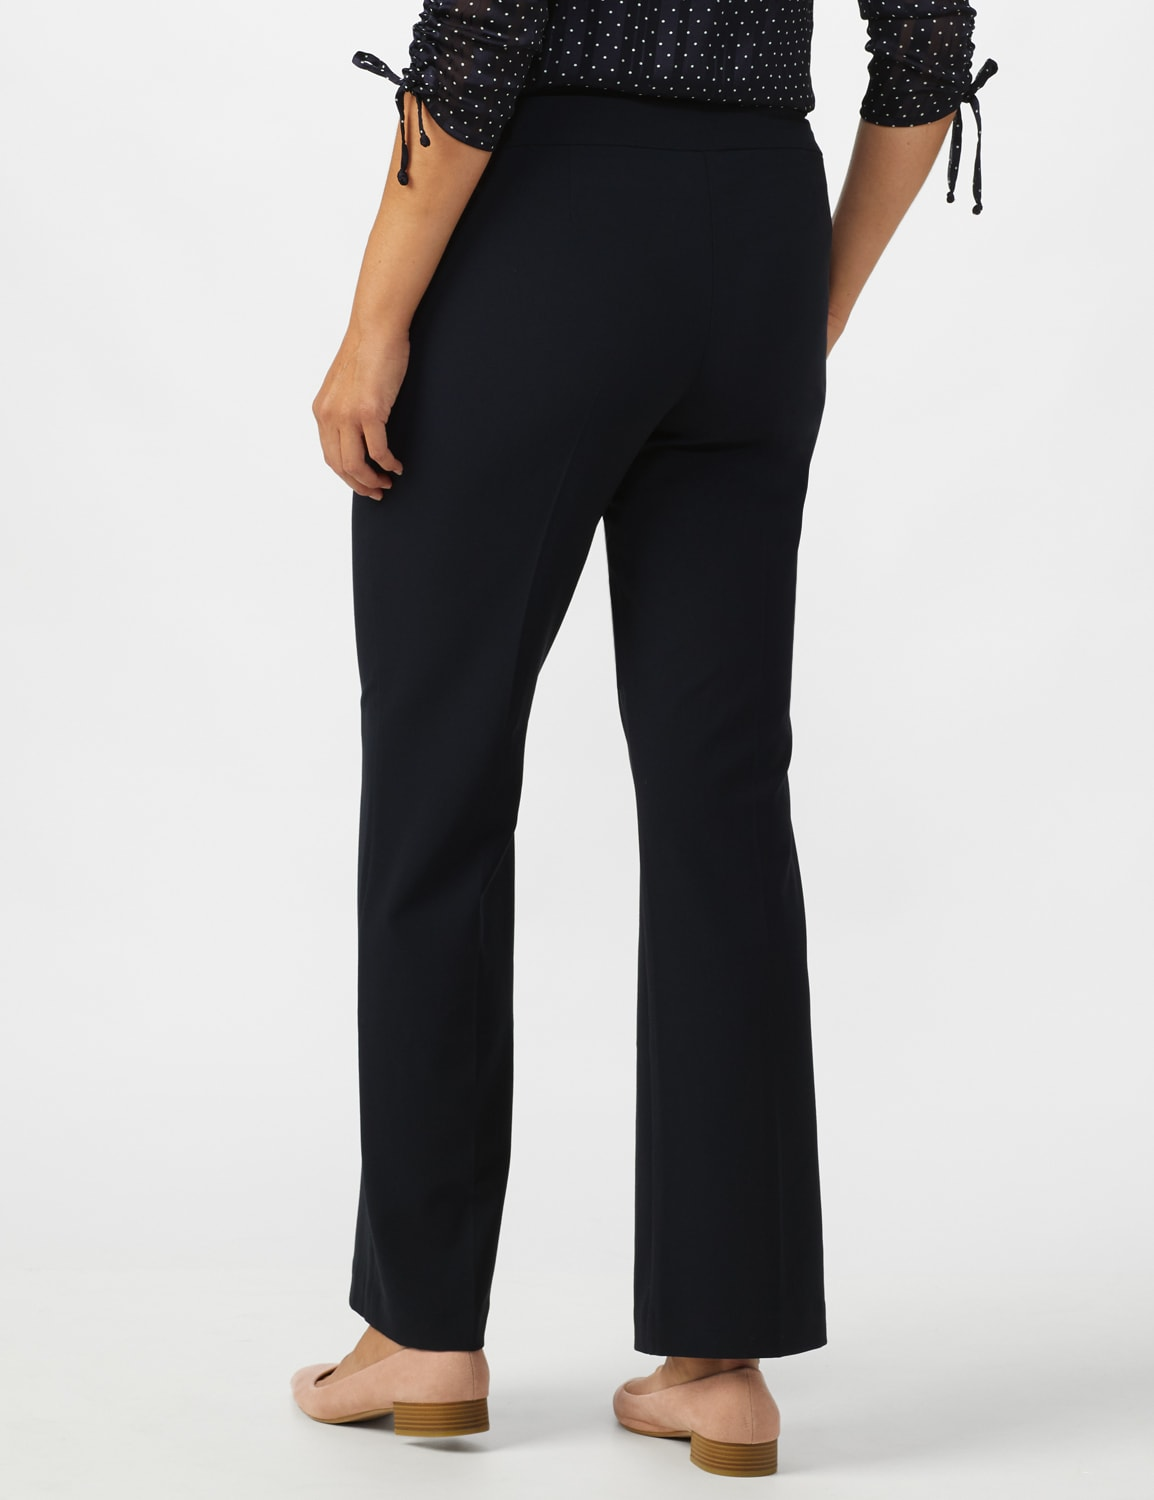 Roz & Ali Secret Agent Tummy Control Pants - Average Length - Navy - Back